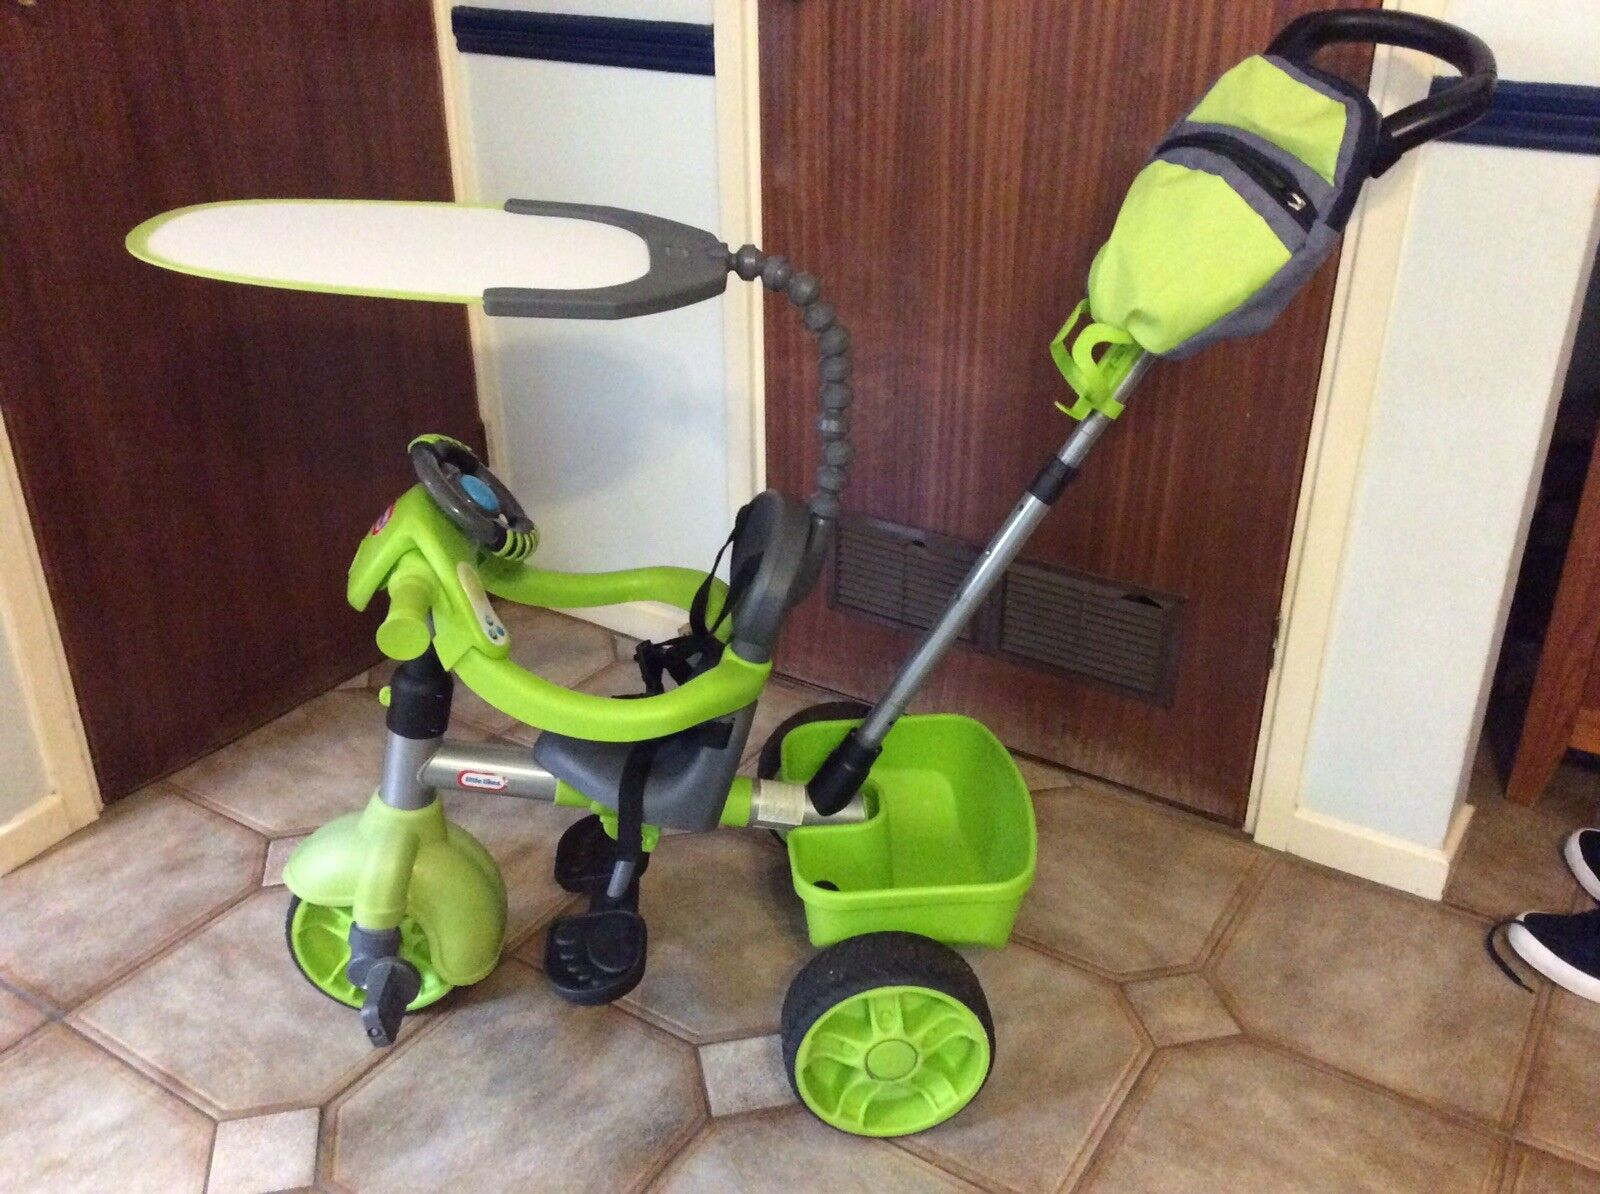 LITTLE TIKES 4 IN 1 TRIKE GREEN WITH BAG, BOTTLE HOLDER, PARASOL & INSTRUCTIONS